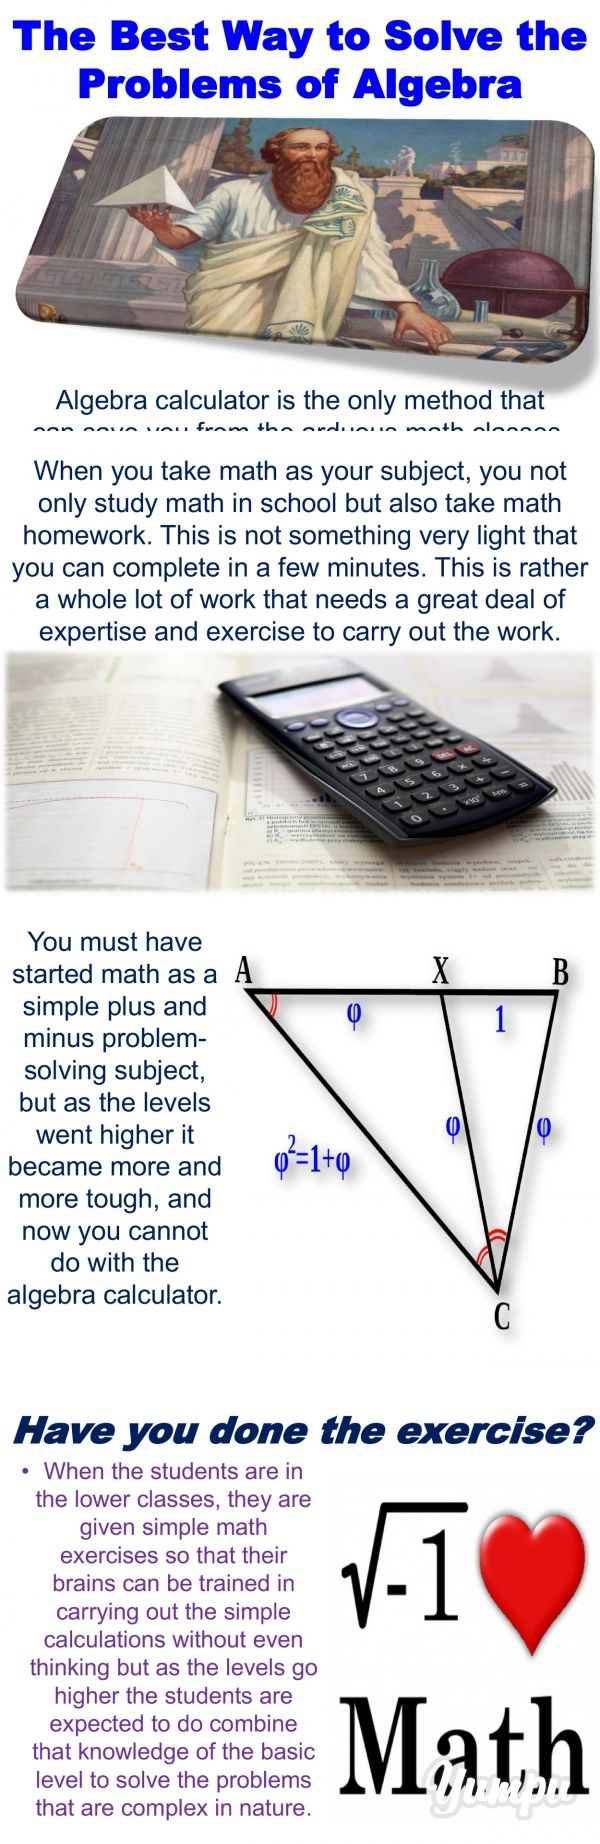 The Best Way to Solve the Problems of Algebra - Magazine with 17 pages: Solve your all algebra problems by using algebra calculator and finish math homework. You can find it many website, but the latest and easy is QuickMath algebra calculator. Now solve your all problems easily and make math your friend.